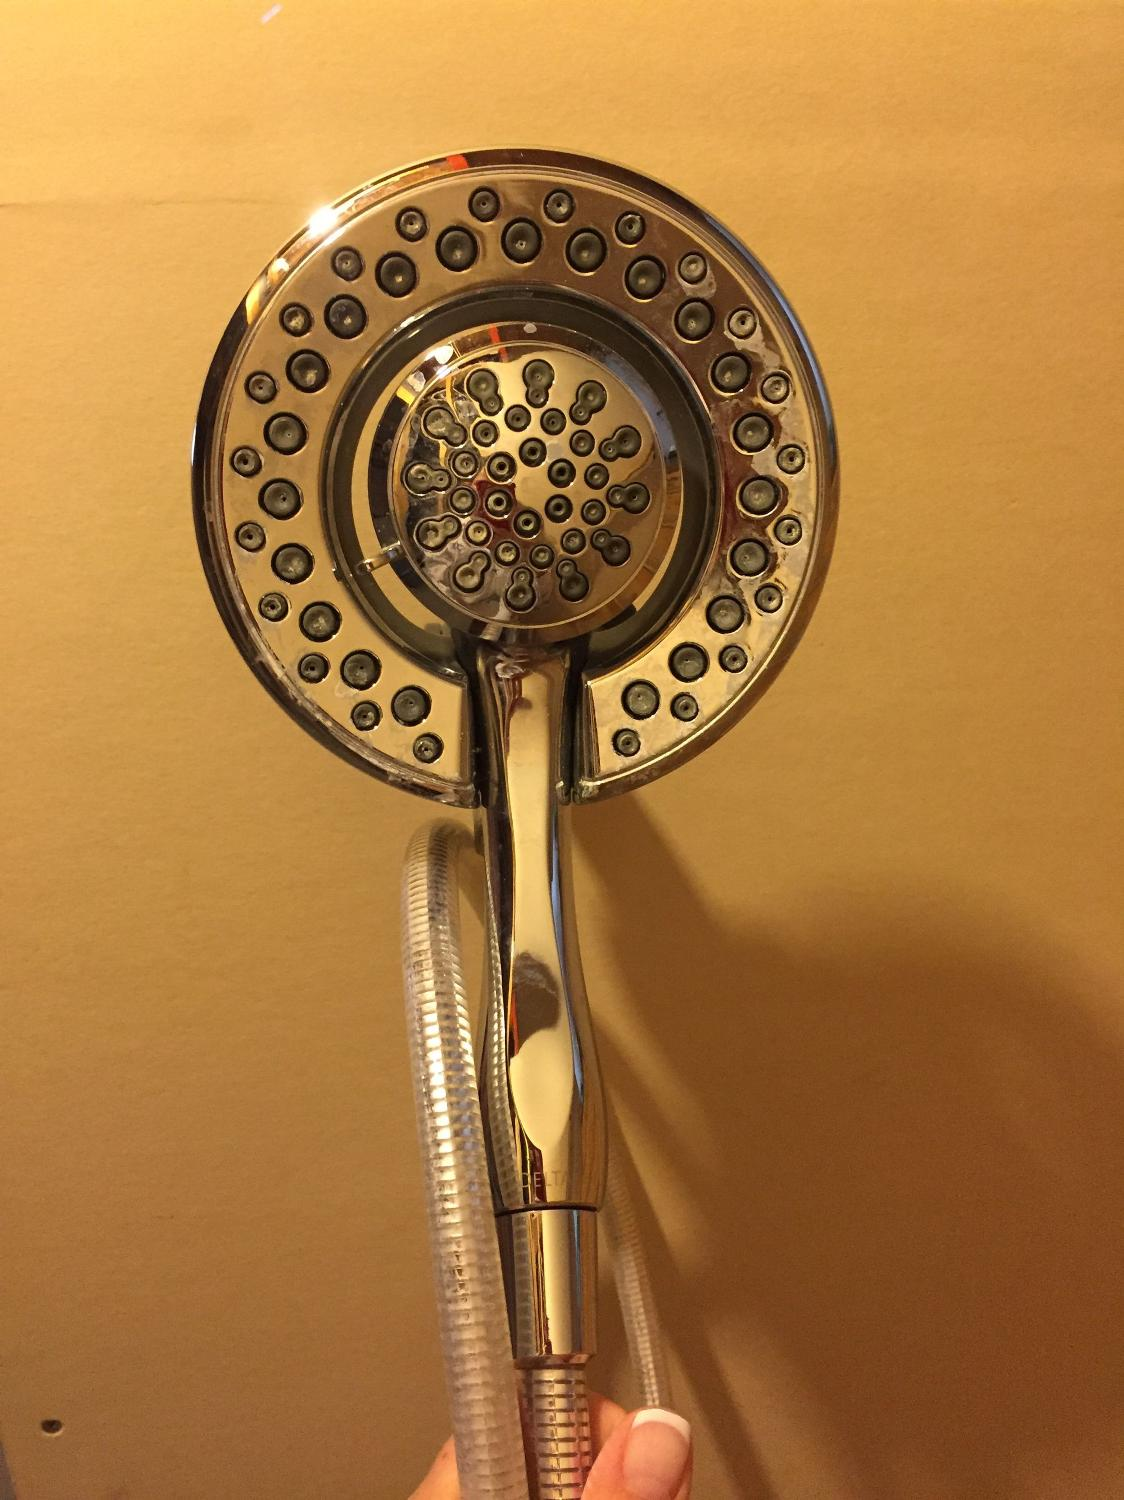 find more delta rain head hand held shower head for sale